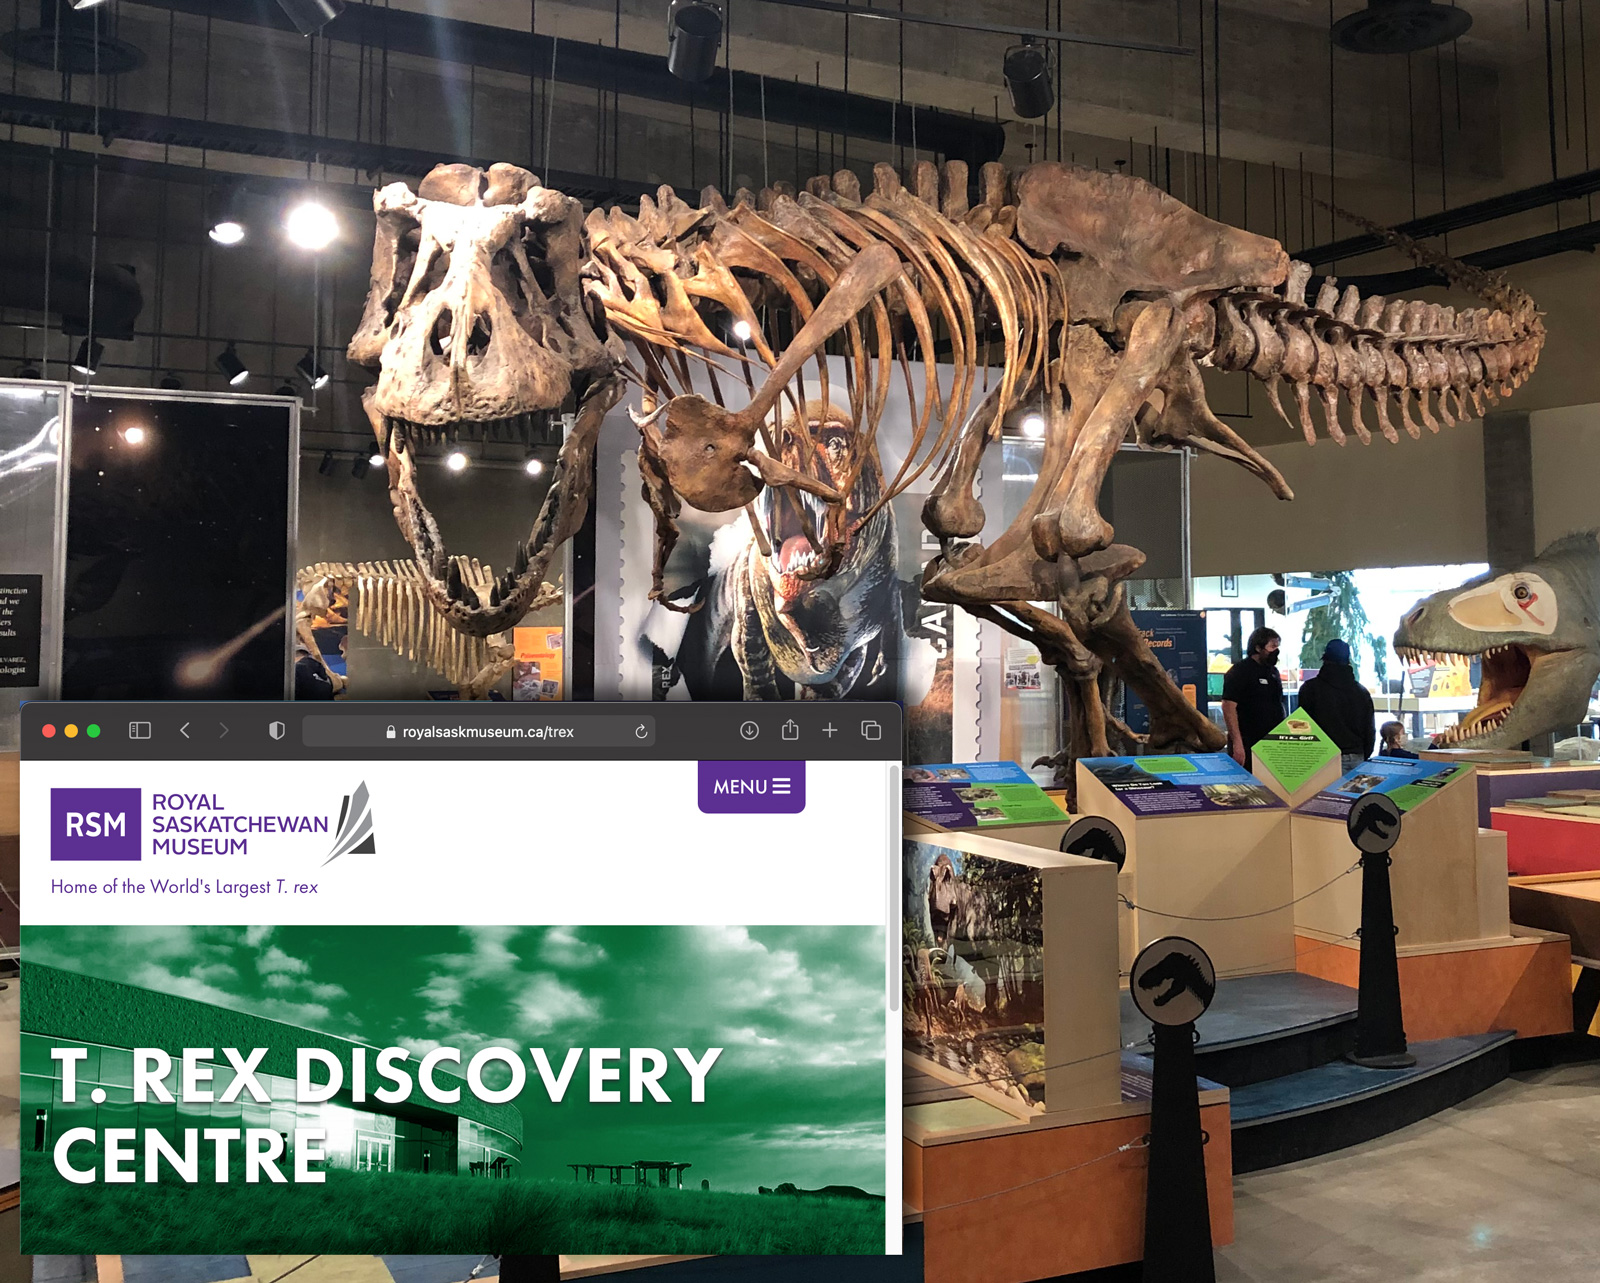 Scotty at the T. rex discovery centre